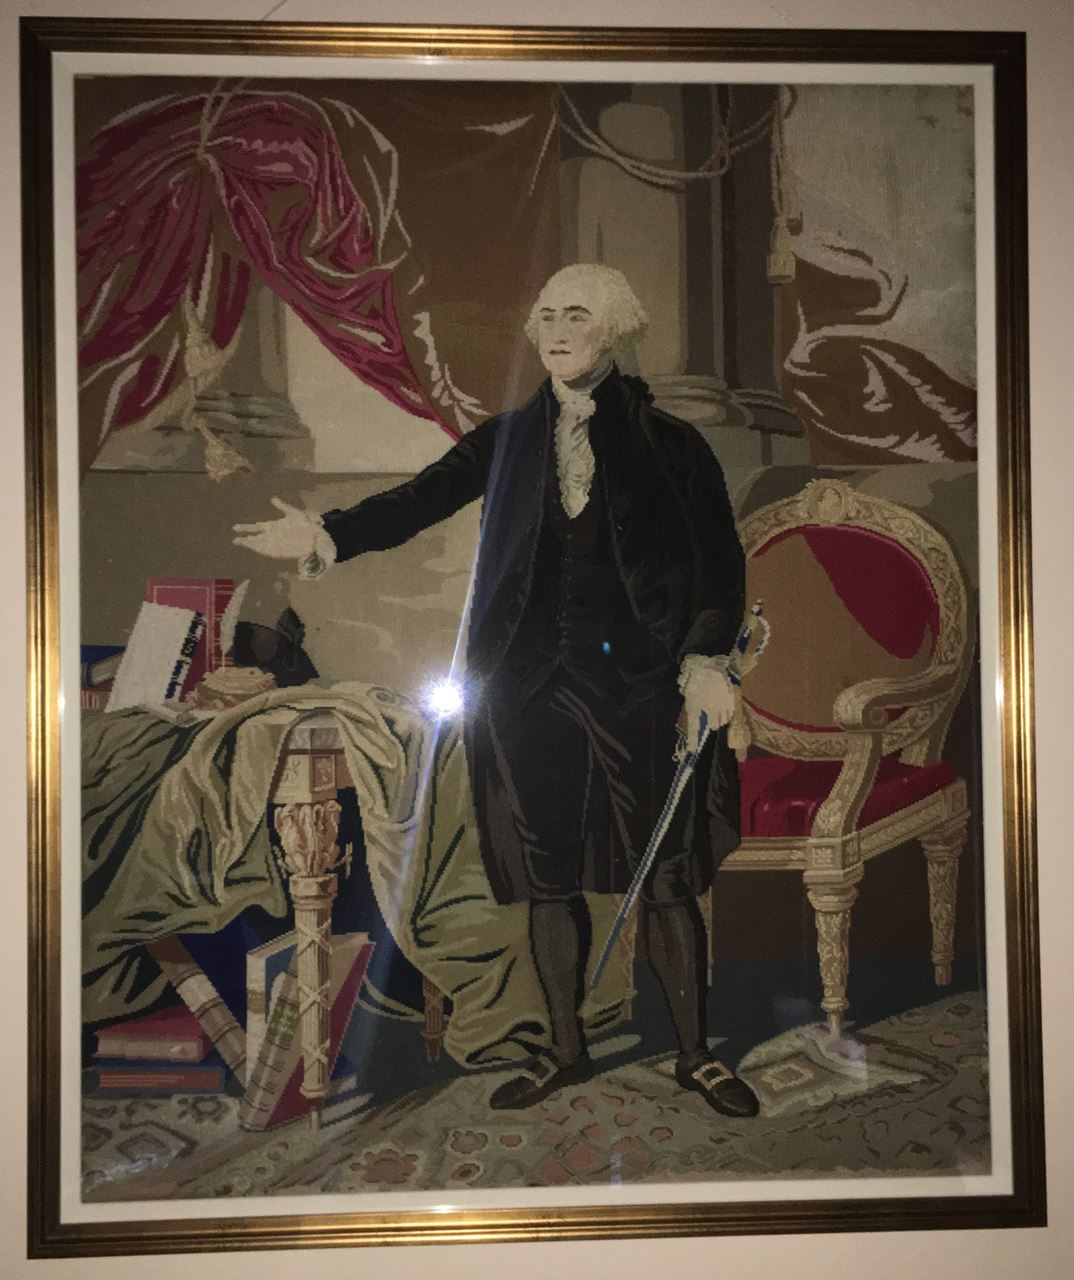 A picture of the 19th Century Needlework depicting Gilbert Stuart's Landsdowne portrait of George Washington